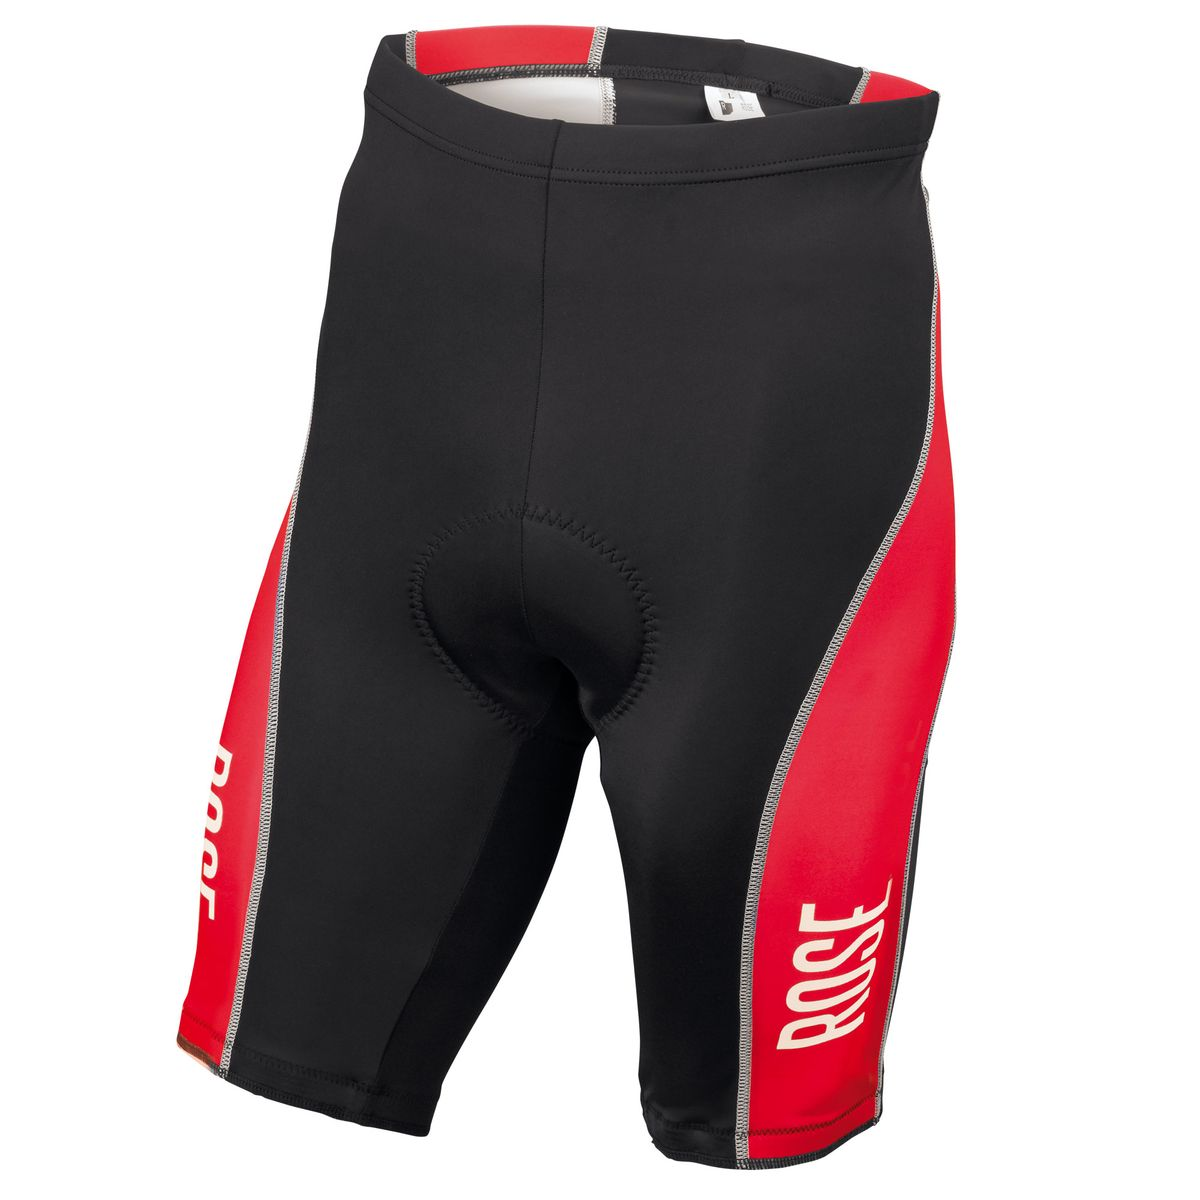 DESIGN III cycling shorts